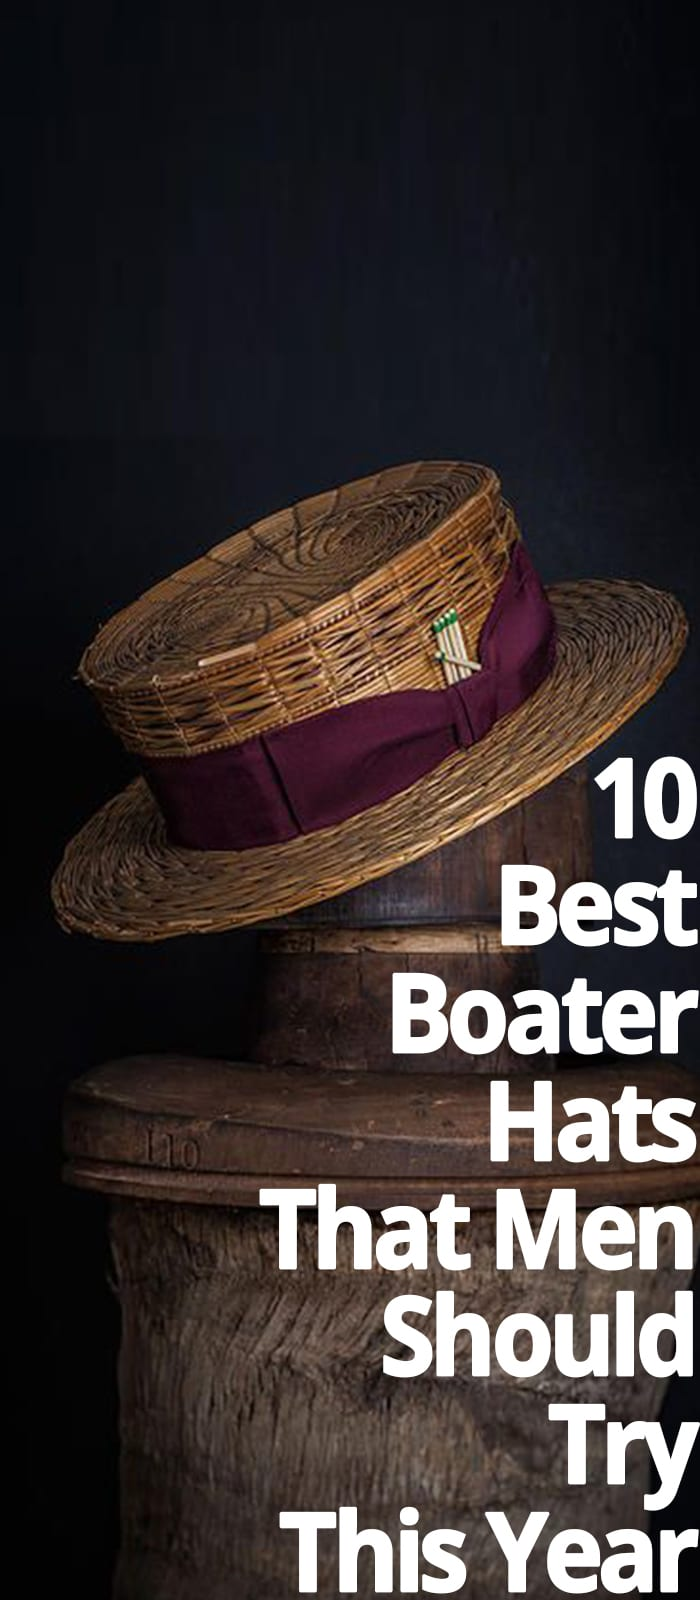 BOATER HATS THAT MEN SHOULD TRY THIS YEAR